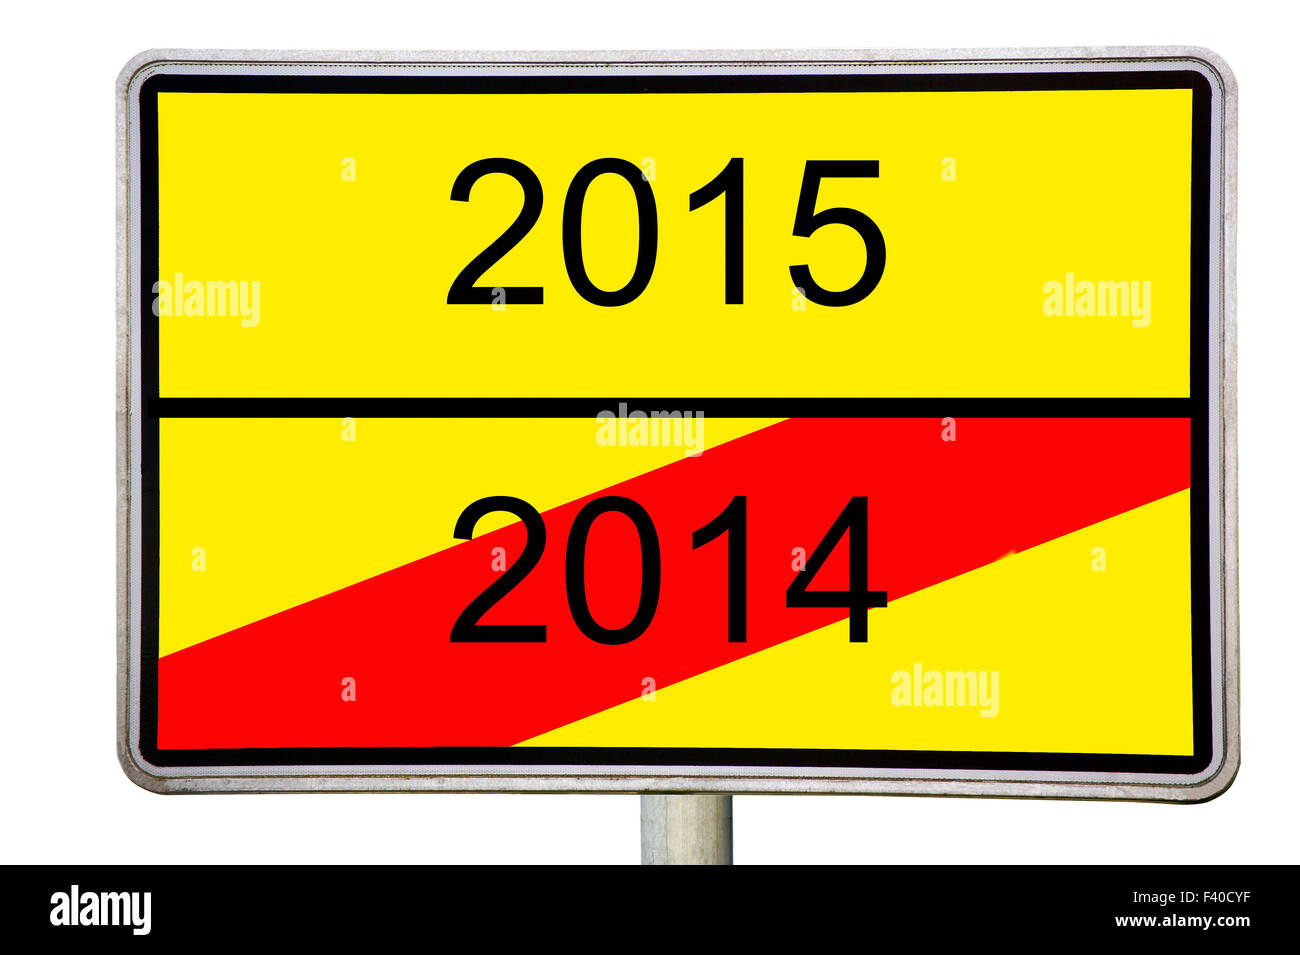 Road sign 2014 2015 - Stock Image